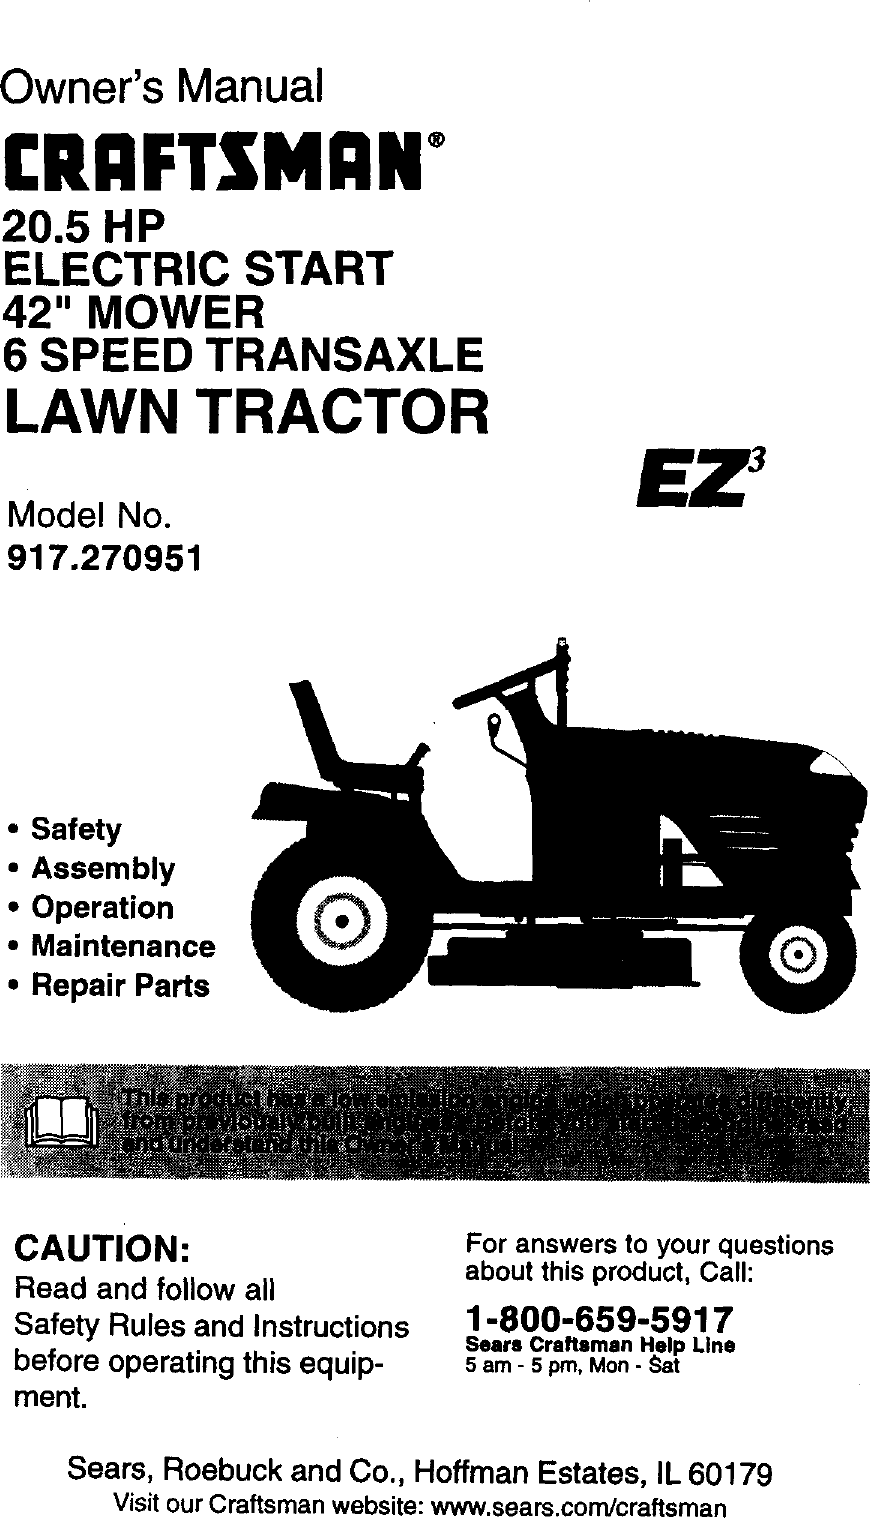 Craftsman 917270951 User Manual 205hp 42 Mower Lawn Tractor Manuals Briggs Stratton Engine Carburetor Air Cleaner Parts Model 460707 And Guides L0020130